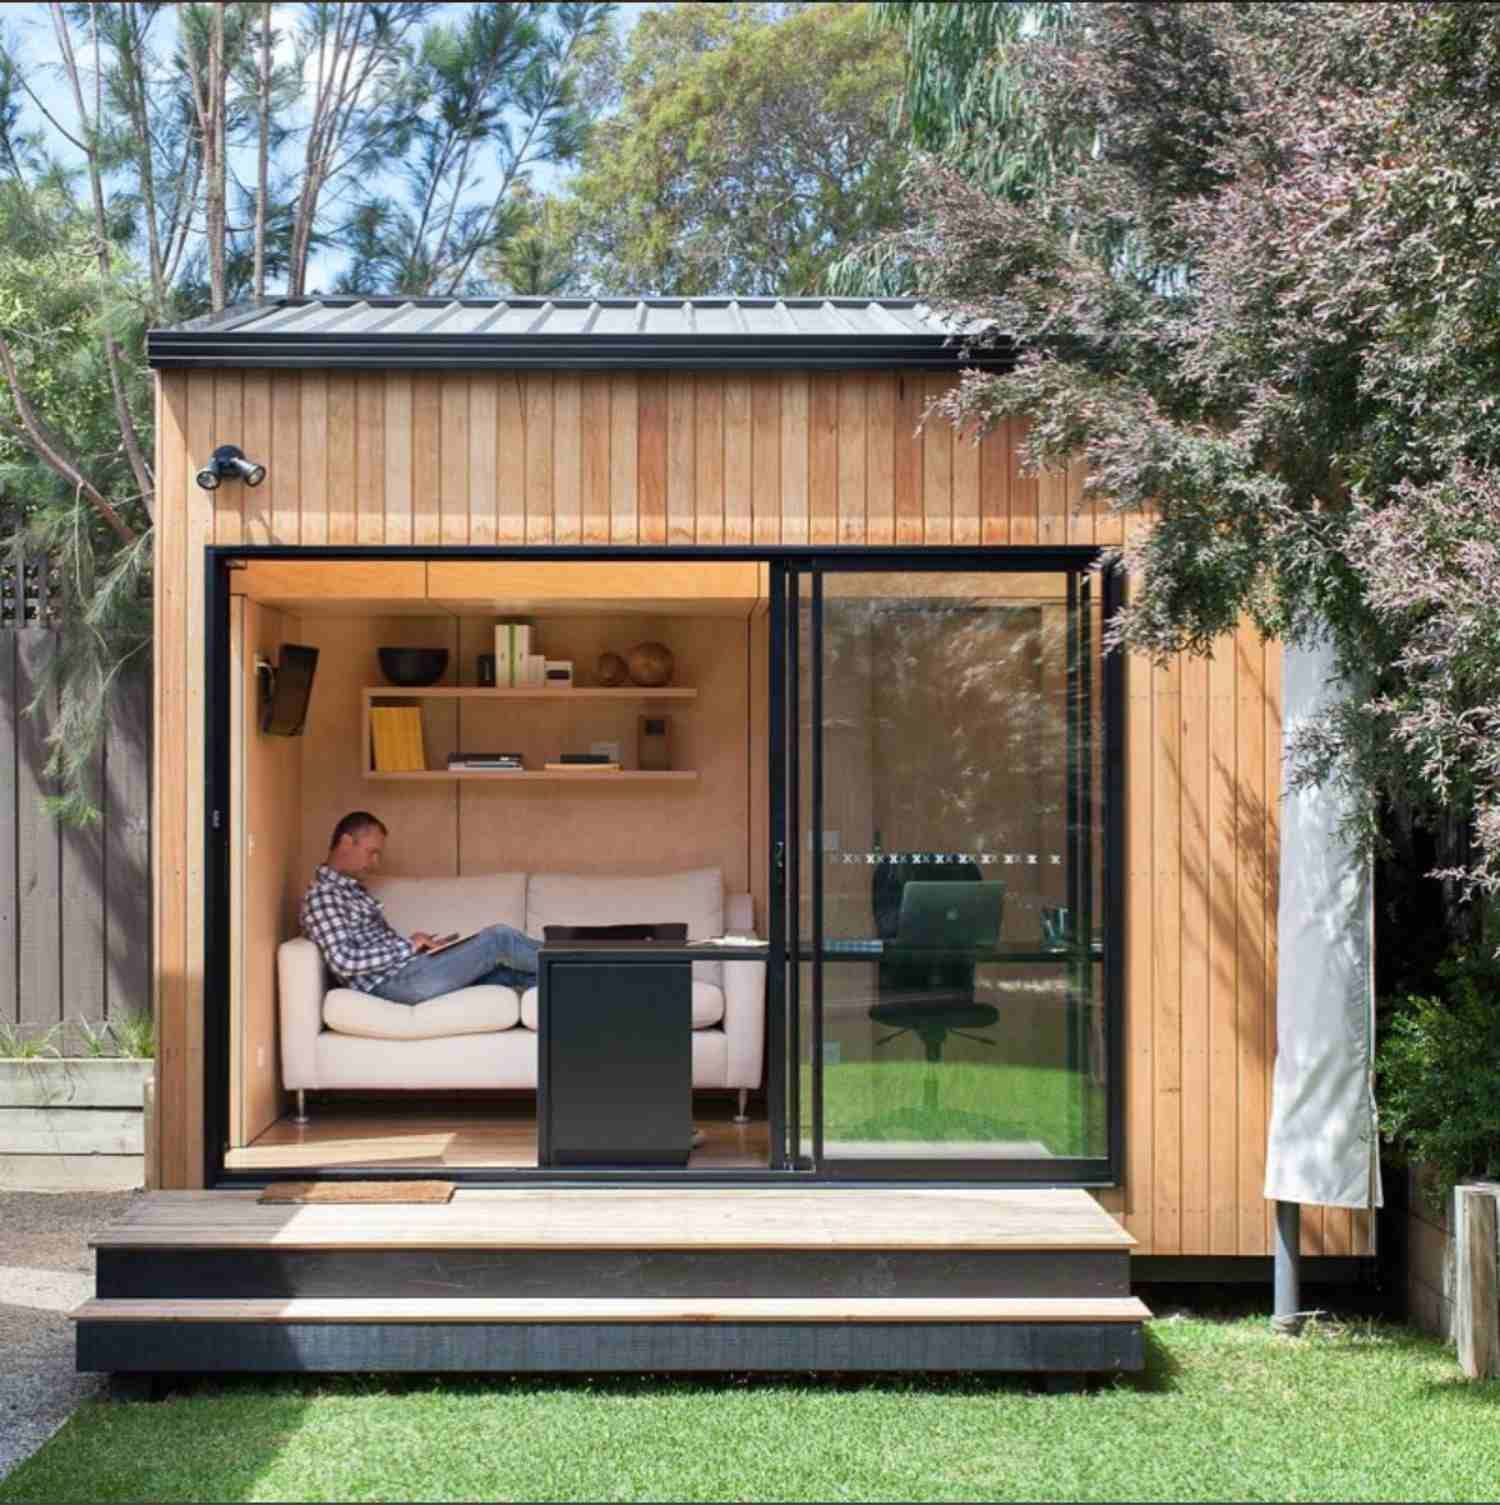 15 Some Of The Coolest Initiatives Of How To Makeover Small Backyard Shed Ideas Shed Design Building A Shed Backyard Sheds